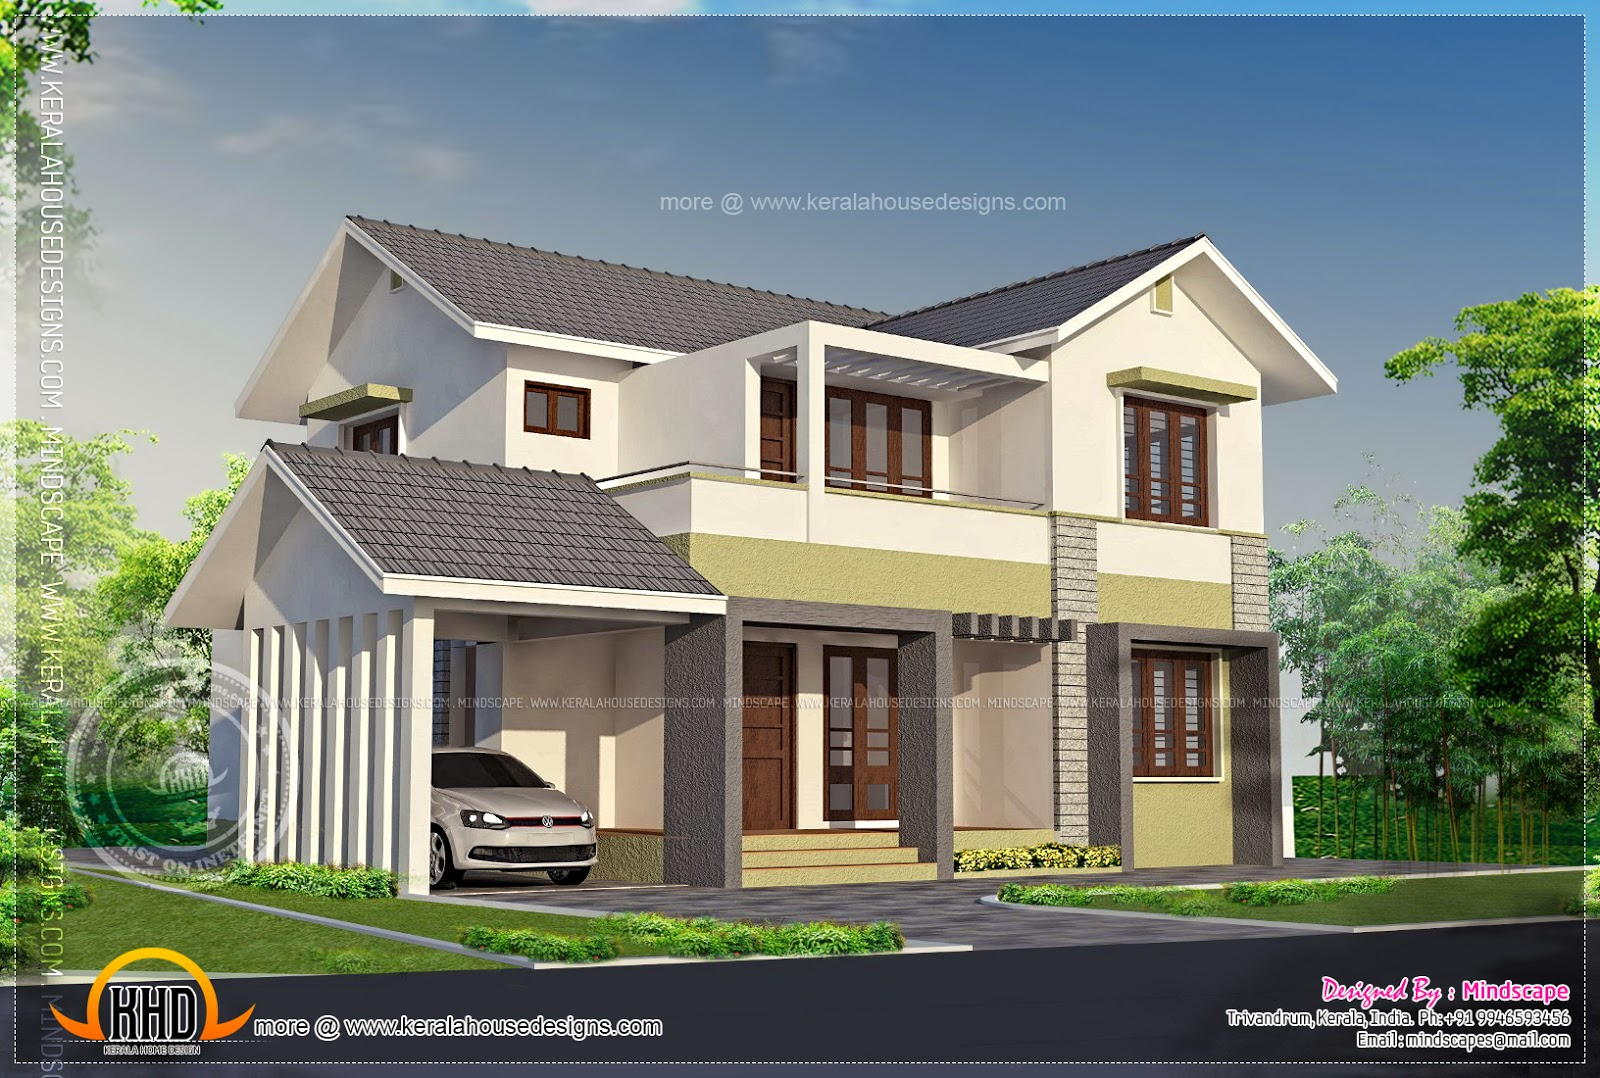 Elevation of 2000 square feet residence kerala home 2000 sq ft house images